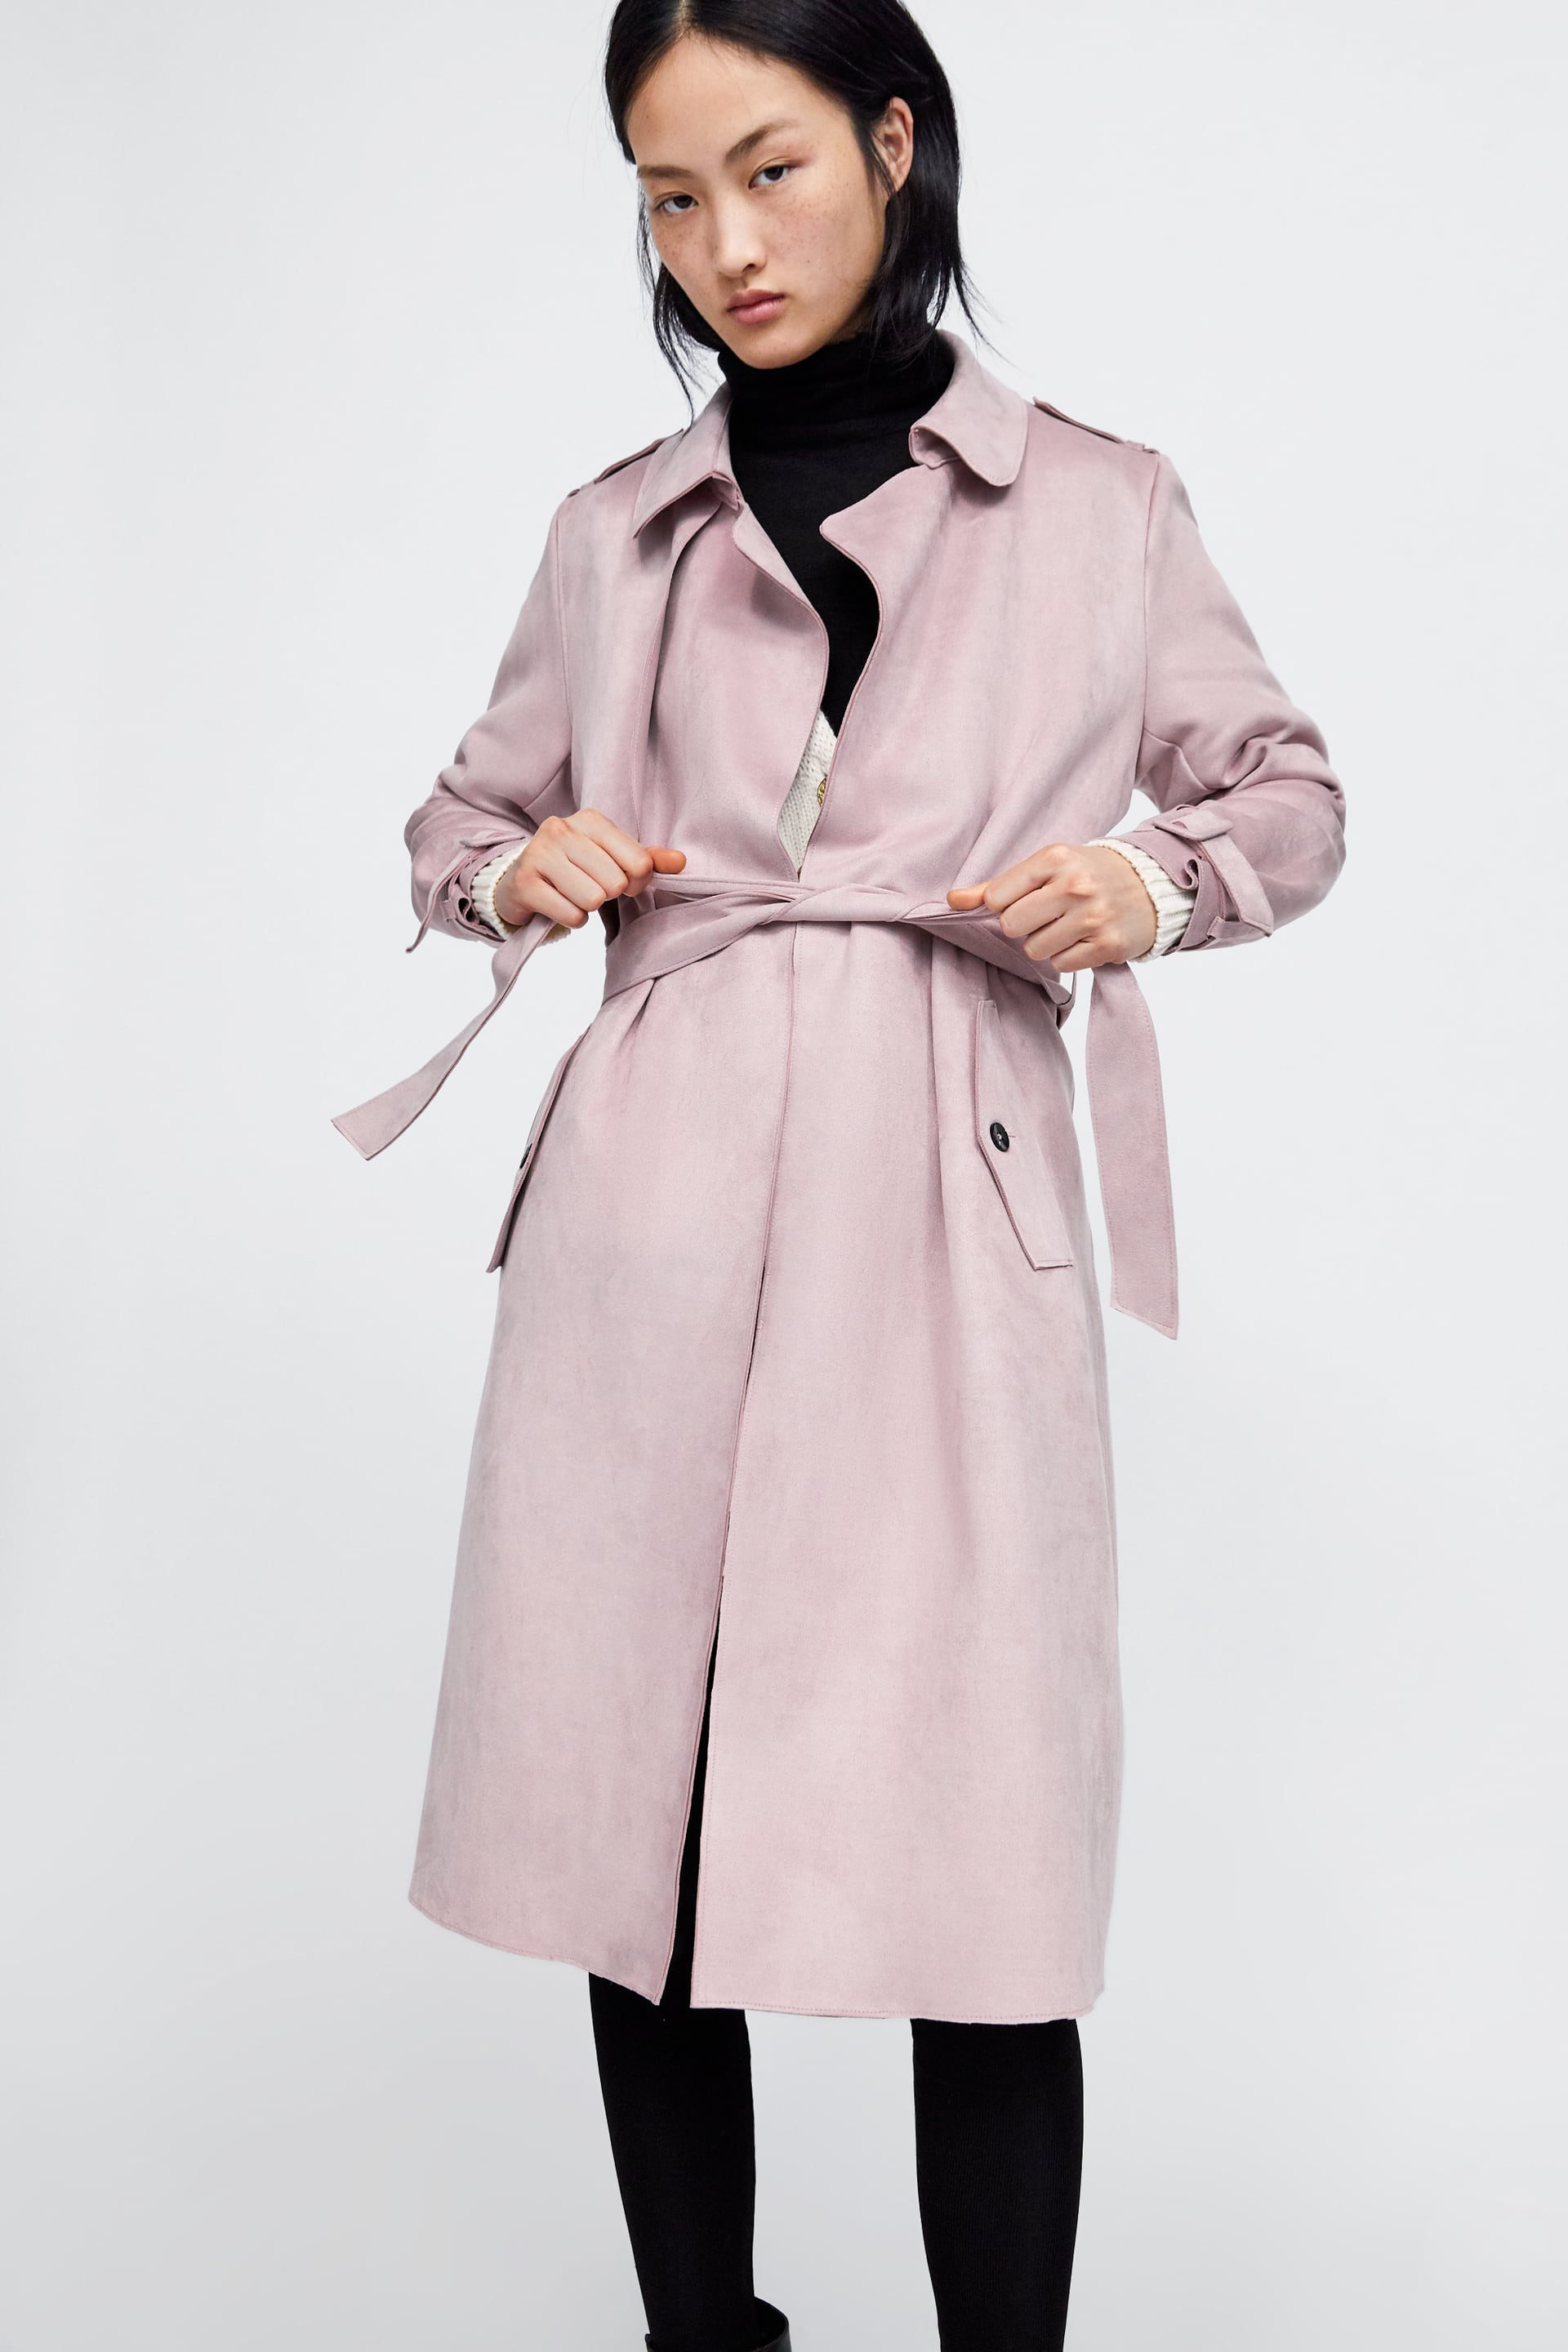 Swoon! We've just fallen in love with a Zara coat - and it's only €30